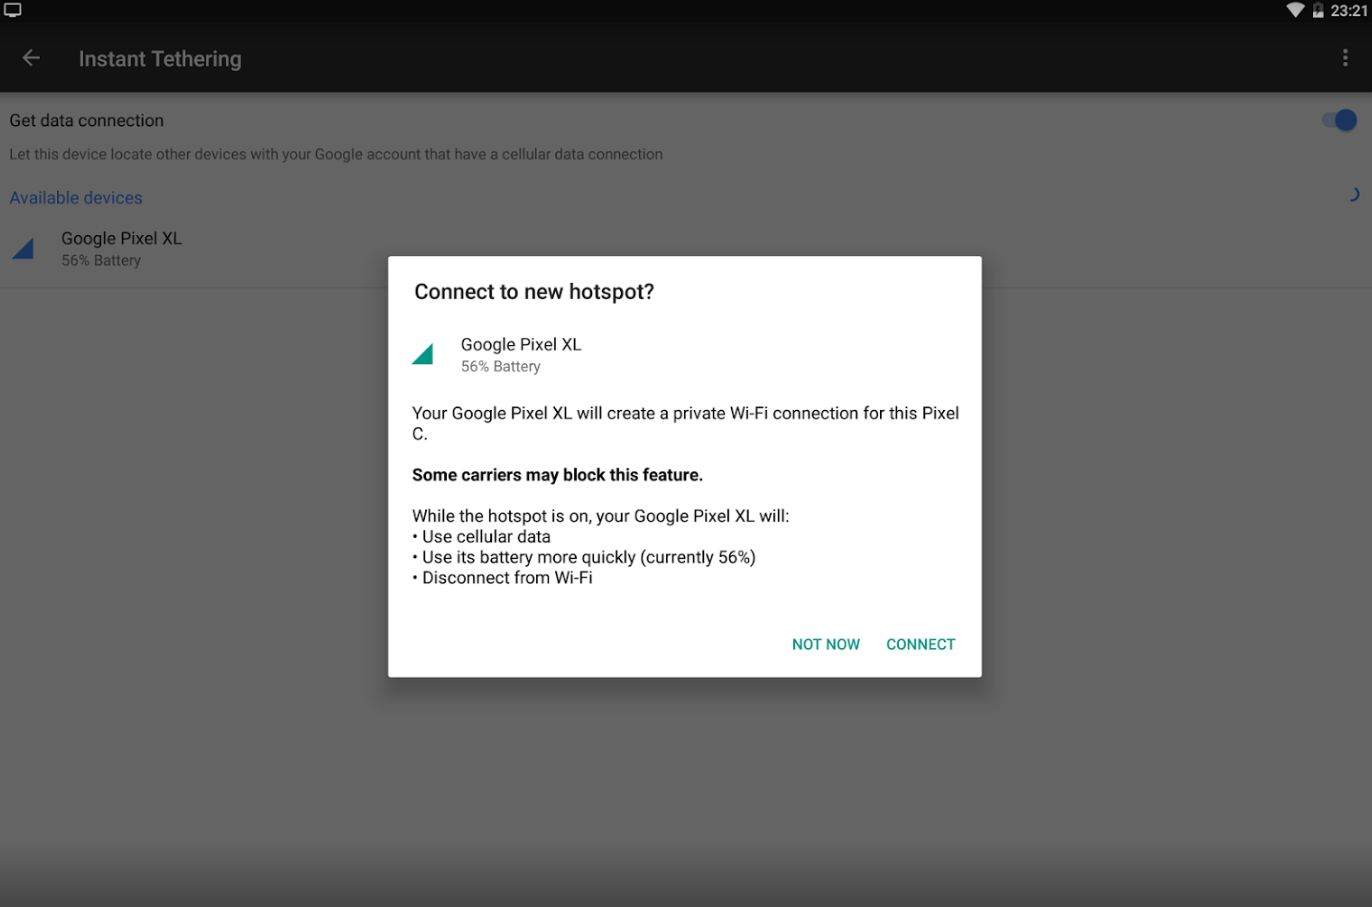 Google rolling out Instant Tethering for Nexus and Pixel devices via Play Services 10.2